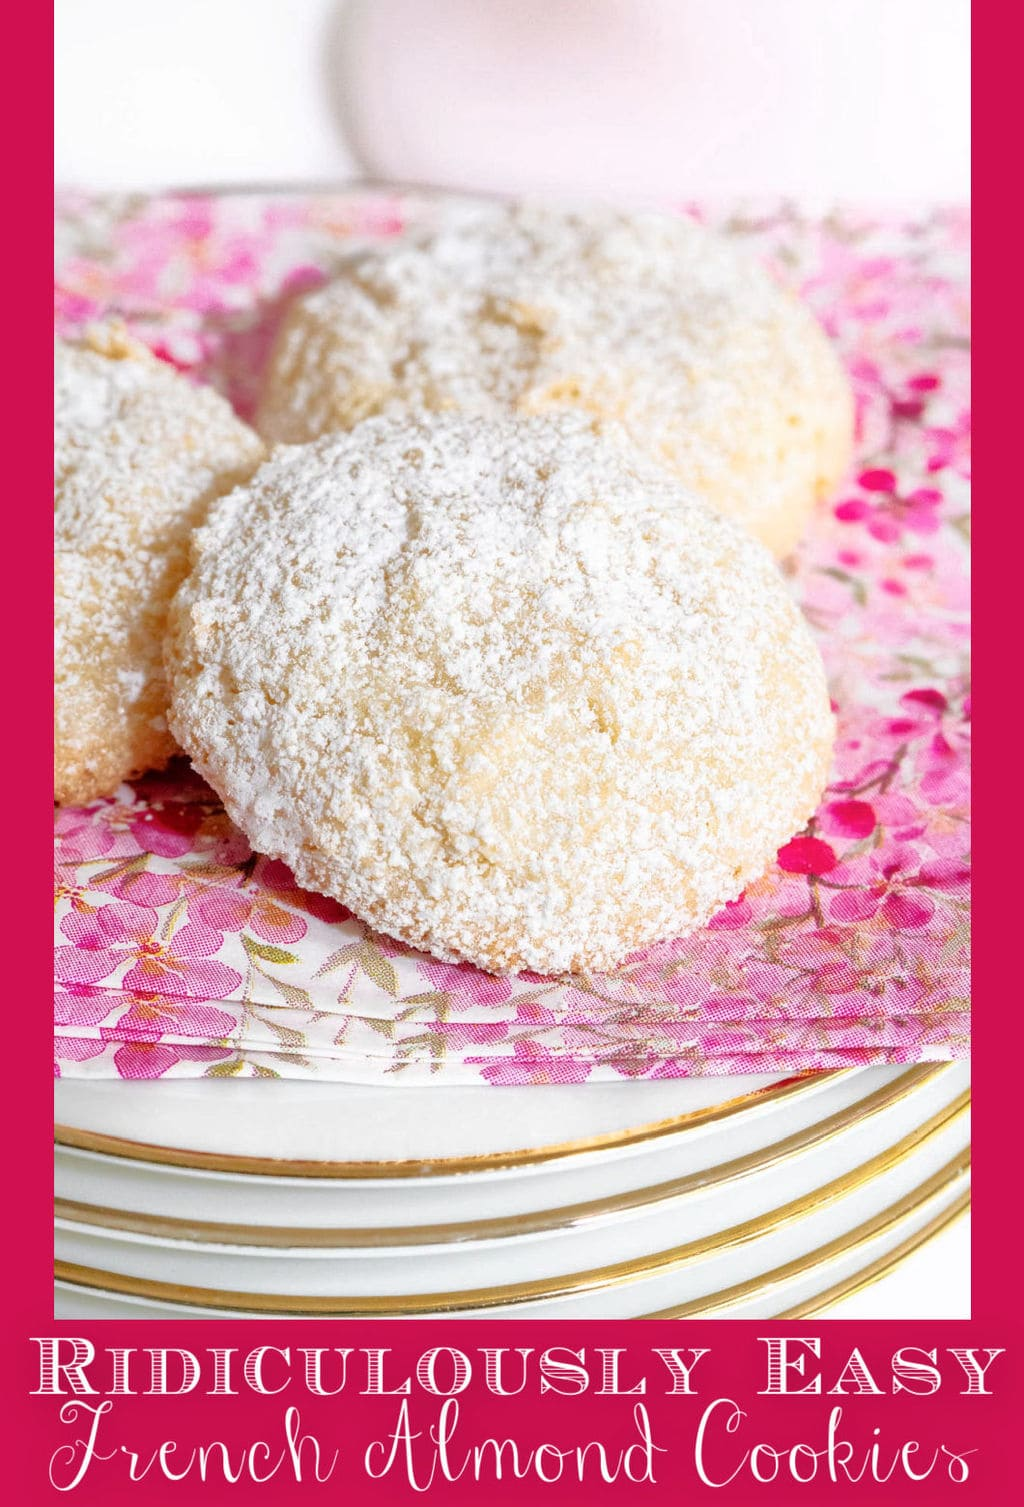 Ridiculously Easy French Almond Cookies (Gluten Free)